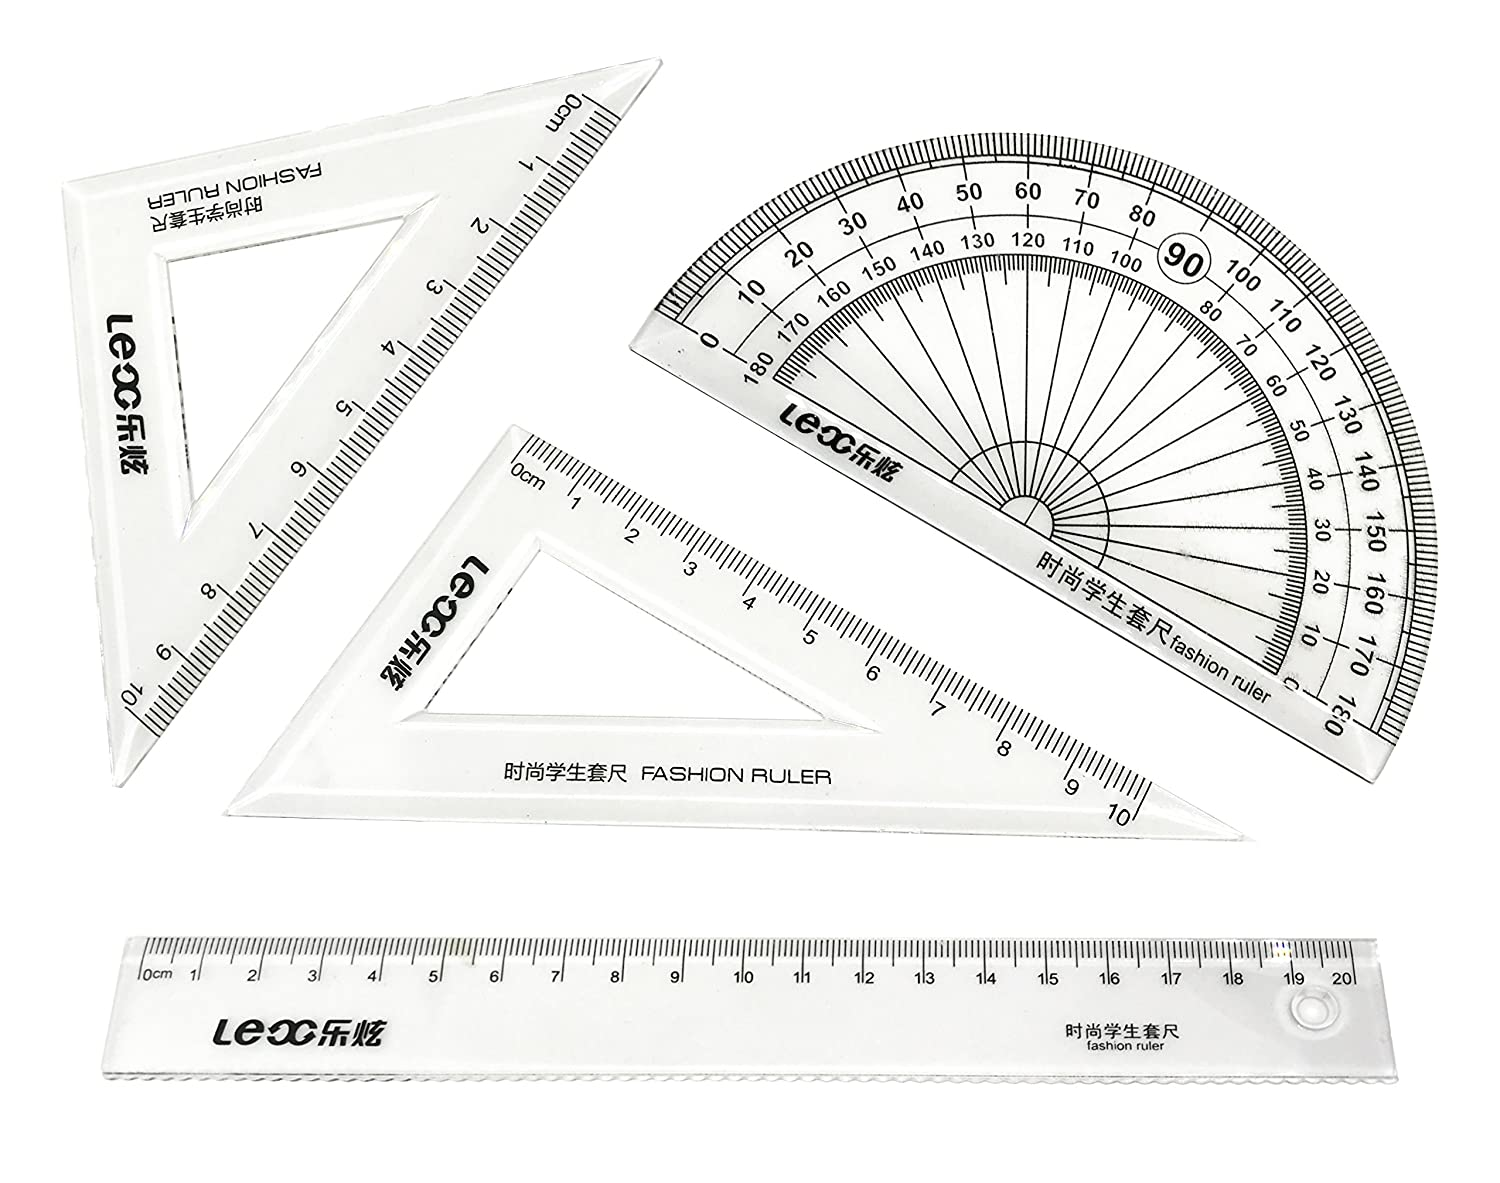 Protractor Pattern Drafting Tool Kit Set for Beginner Writing Station 30692